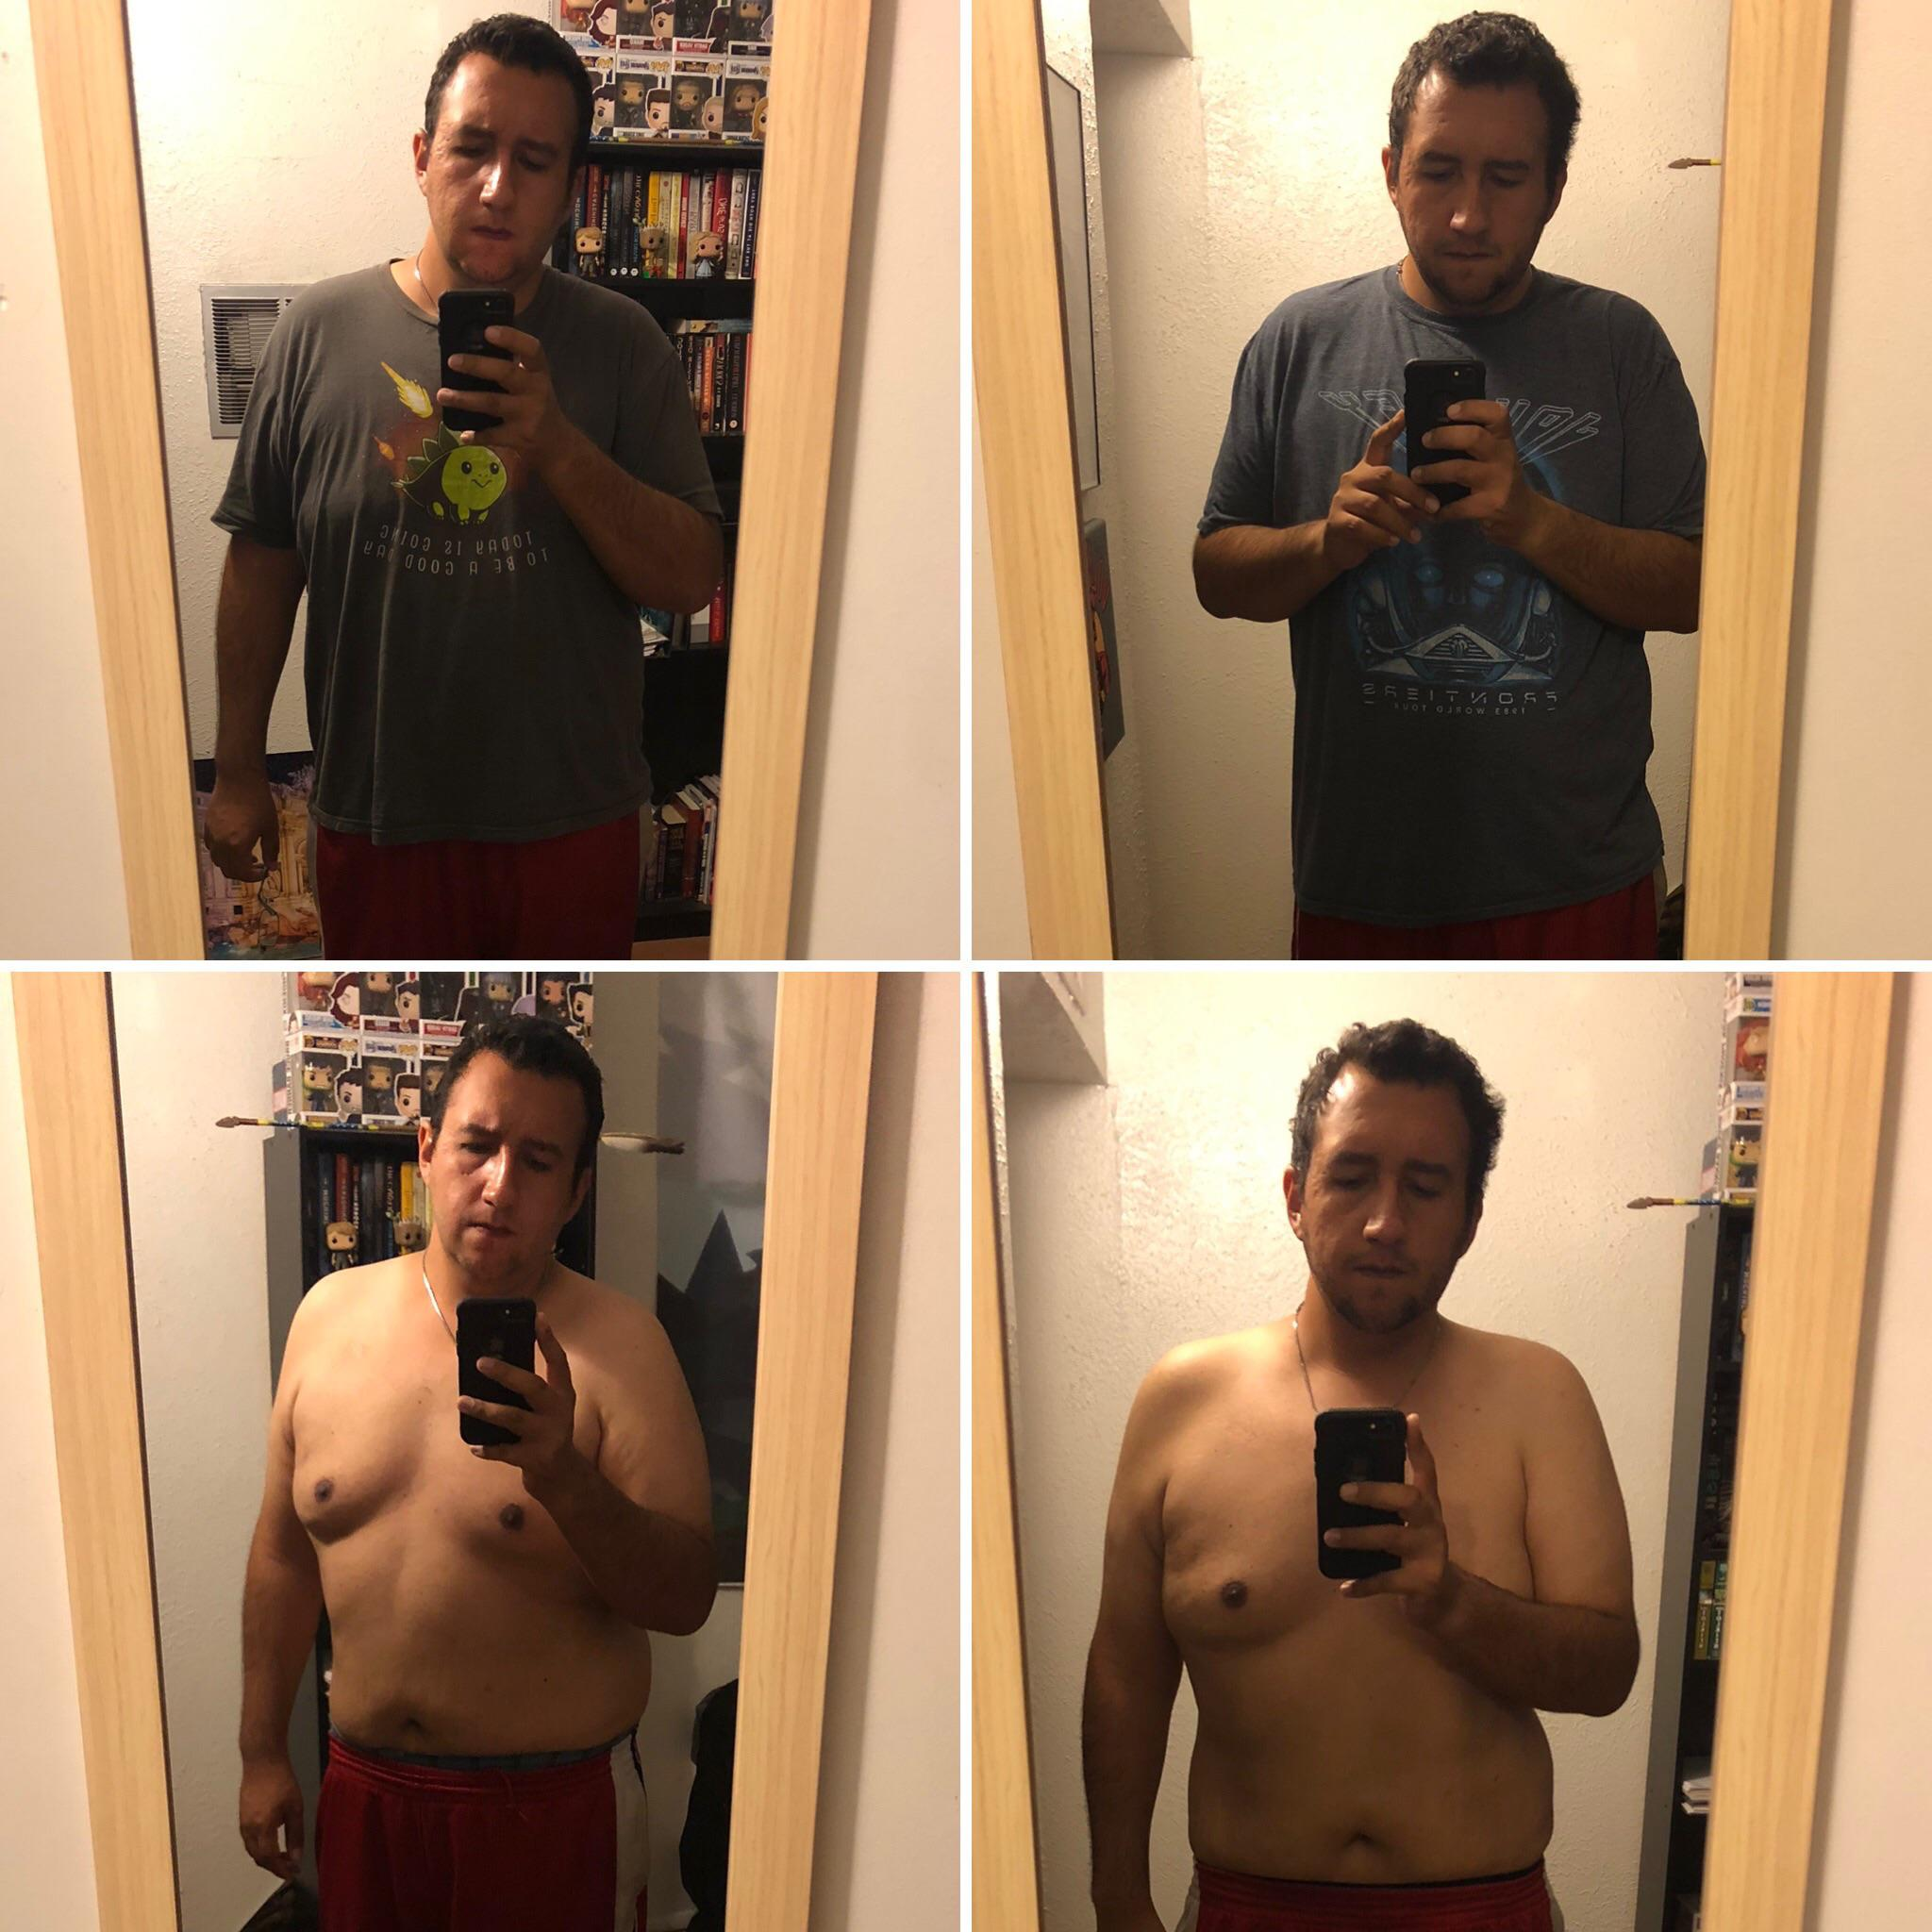 5 feet 10 Male 18 lbs Fat Loss Before and After 265 lbs to 247 lbs